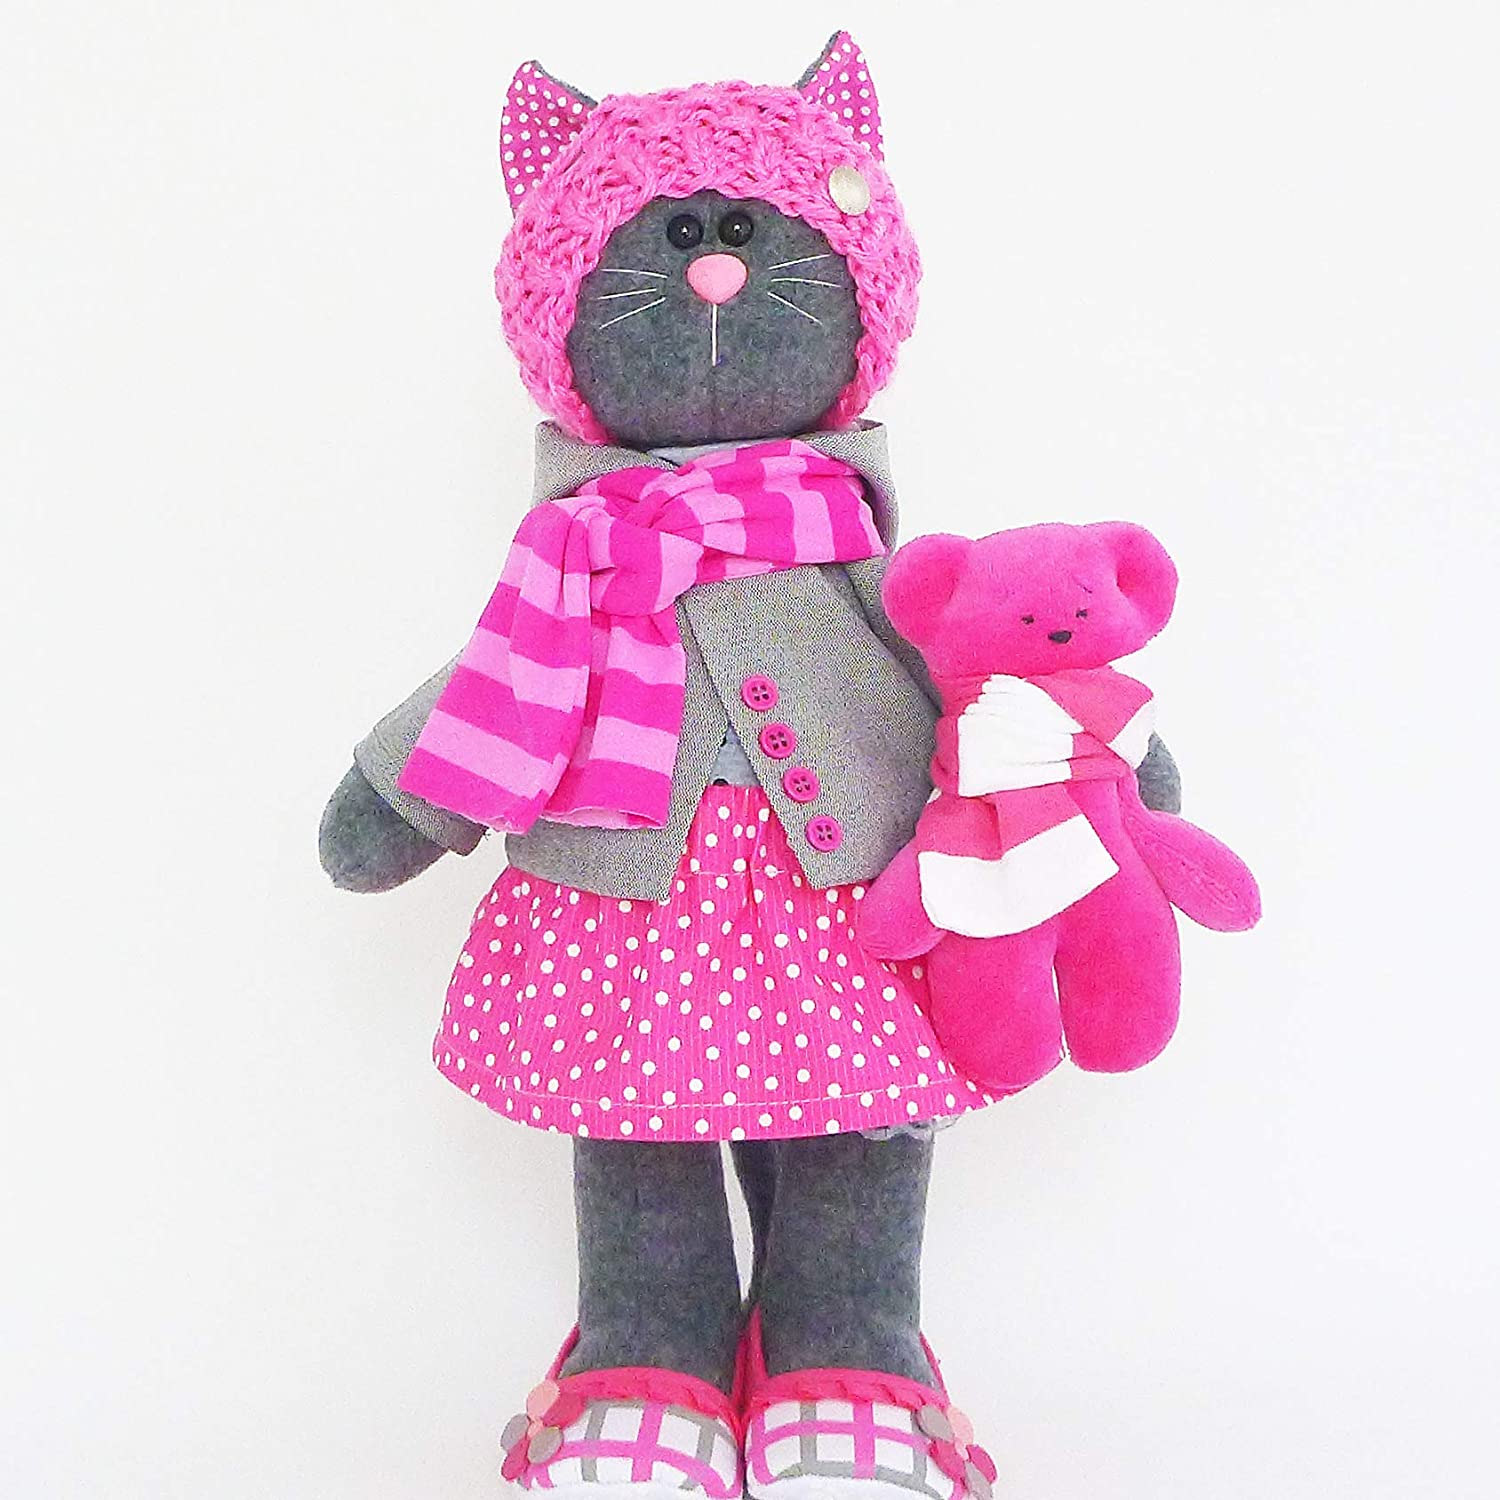 Stuffed cat doll 14 inch for girl, Stuffed small bear, Handmade by ZuzuHappyToys